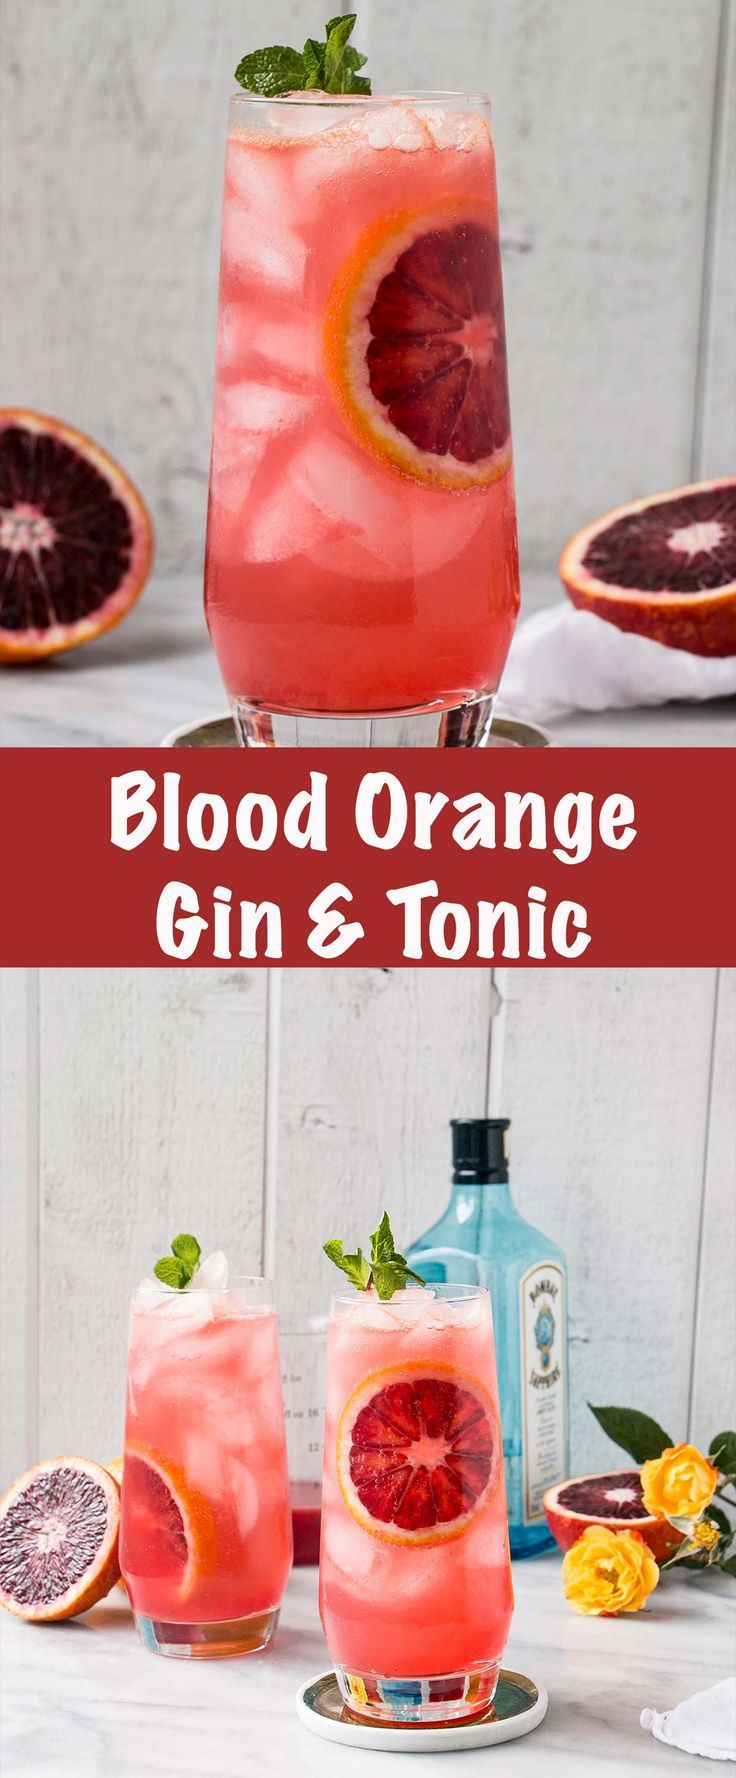 A refreshing and seasonal spin on a classic G&T! #bloodorange #cocktail #ginandtonic